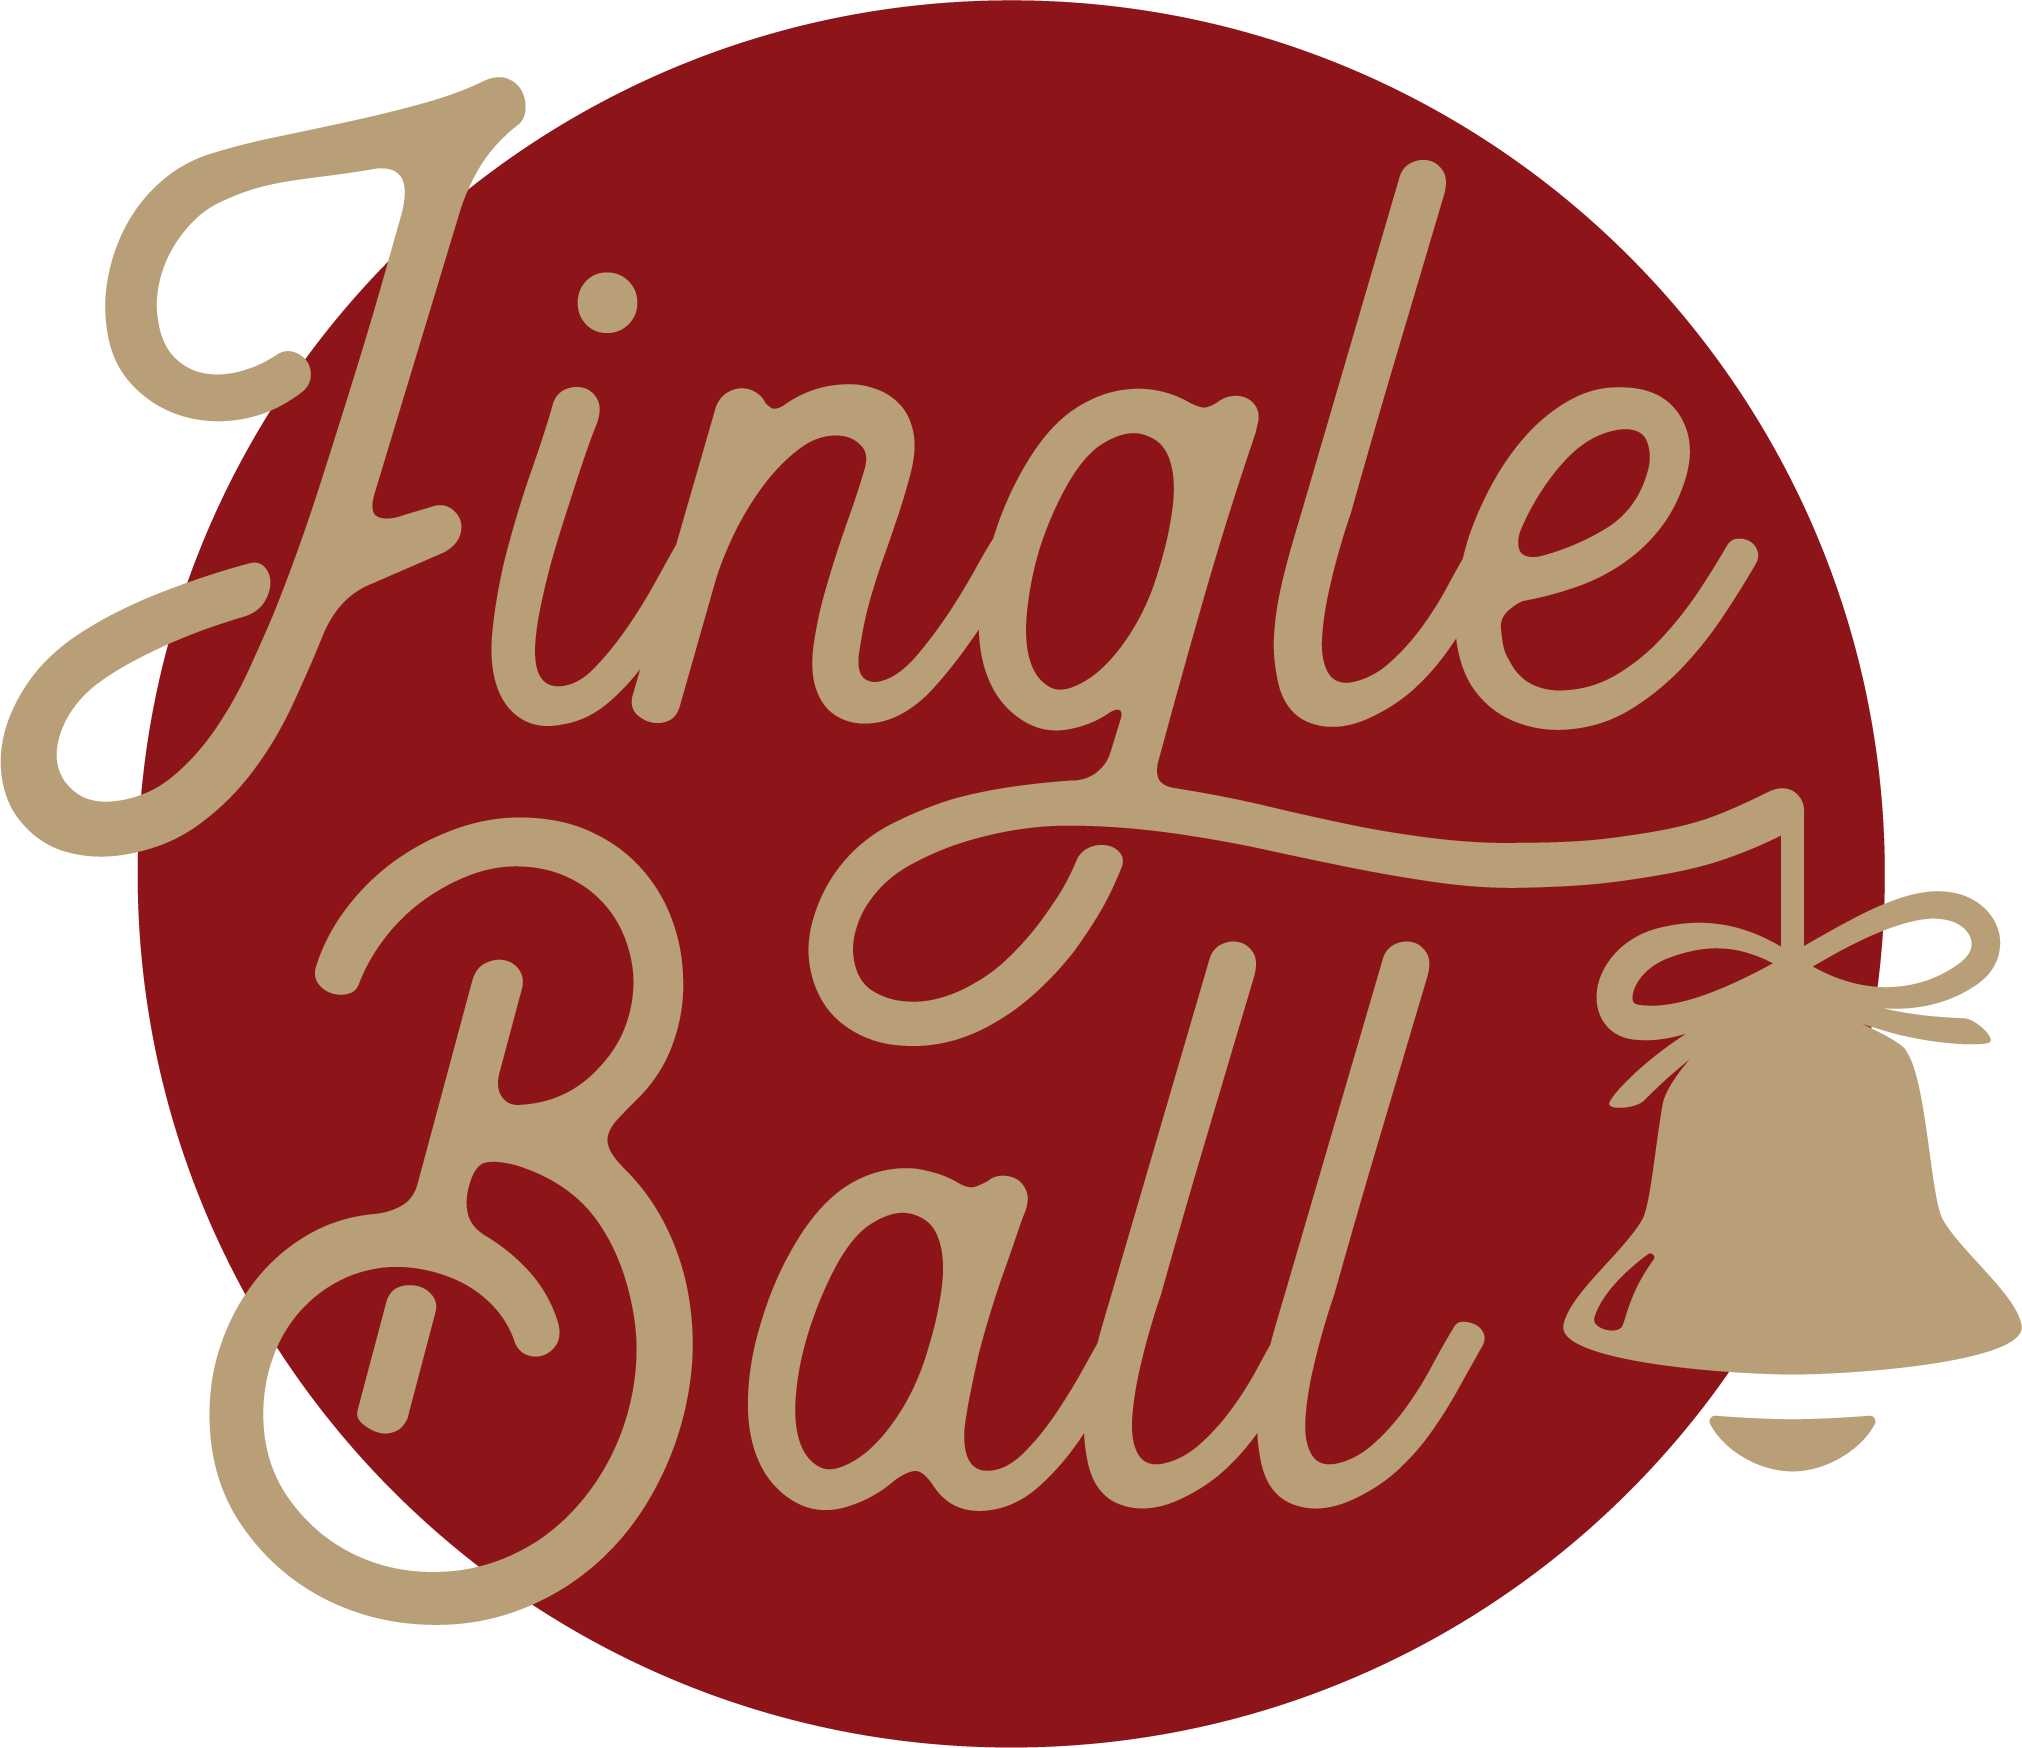 Image for The 26th Annual Jingle Ball - General Admission